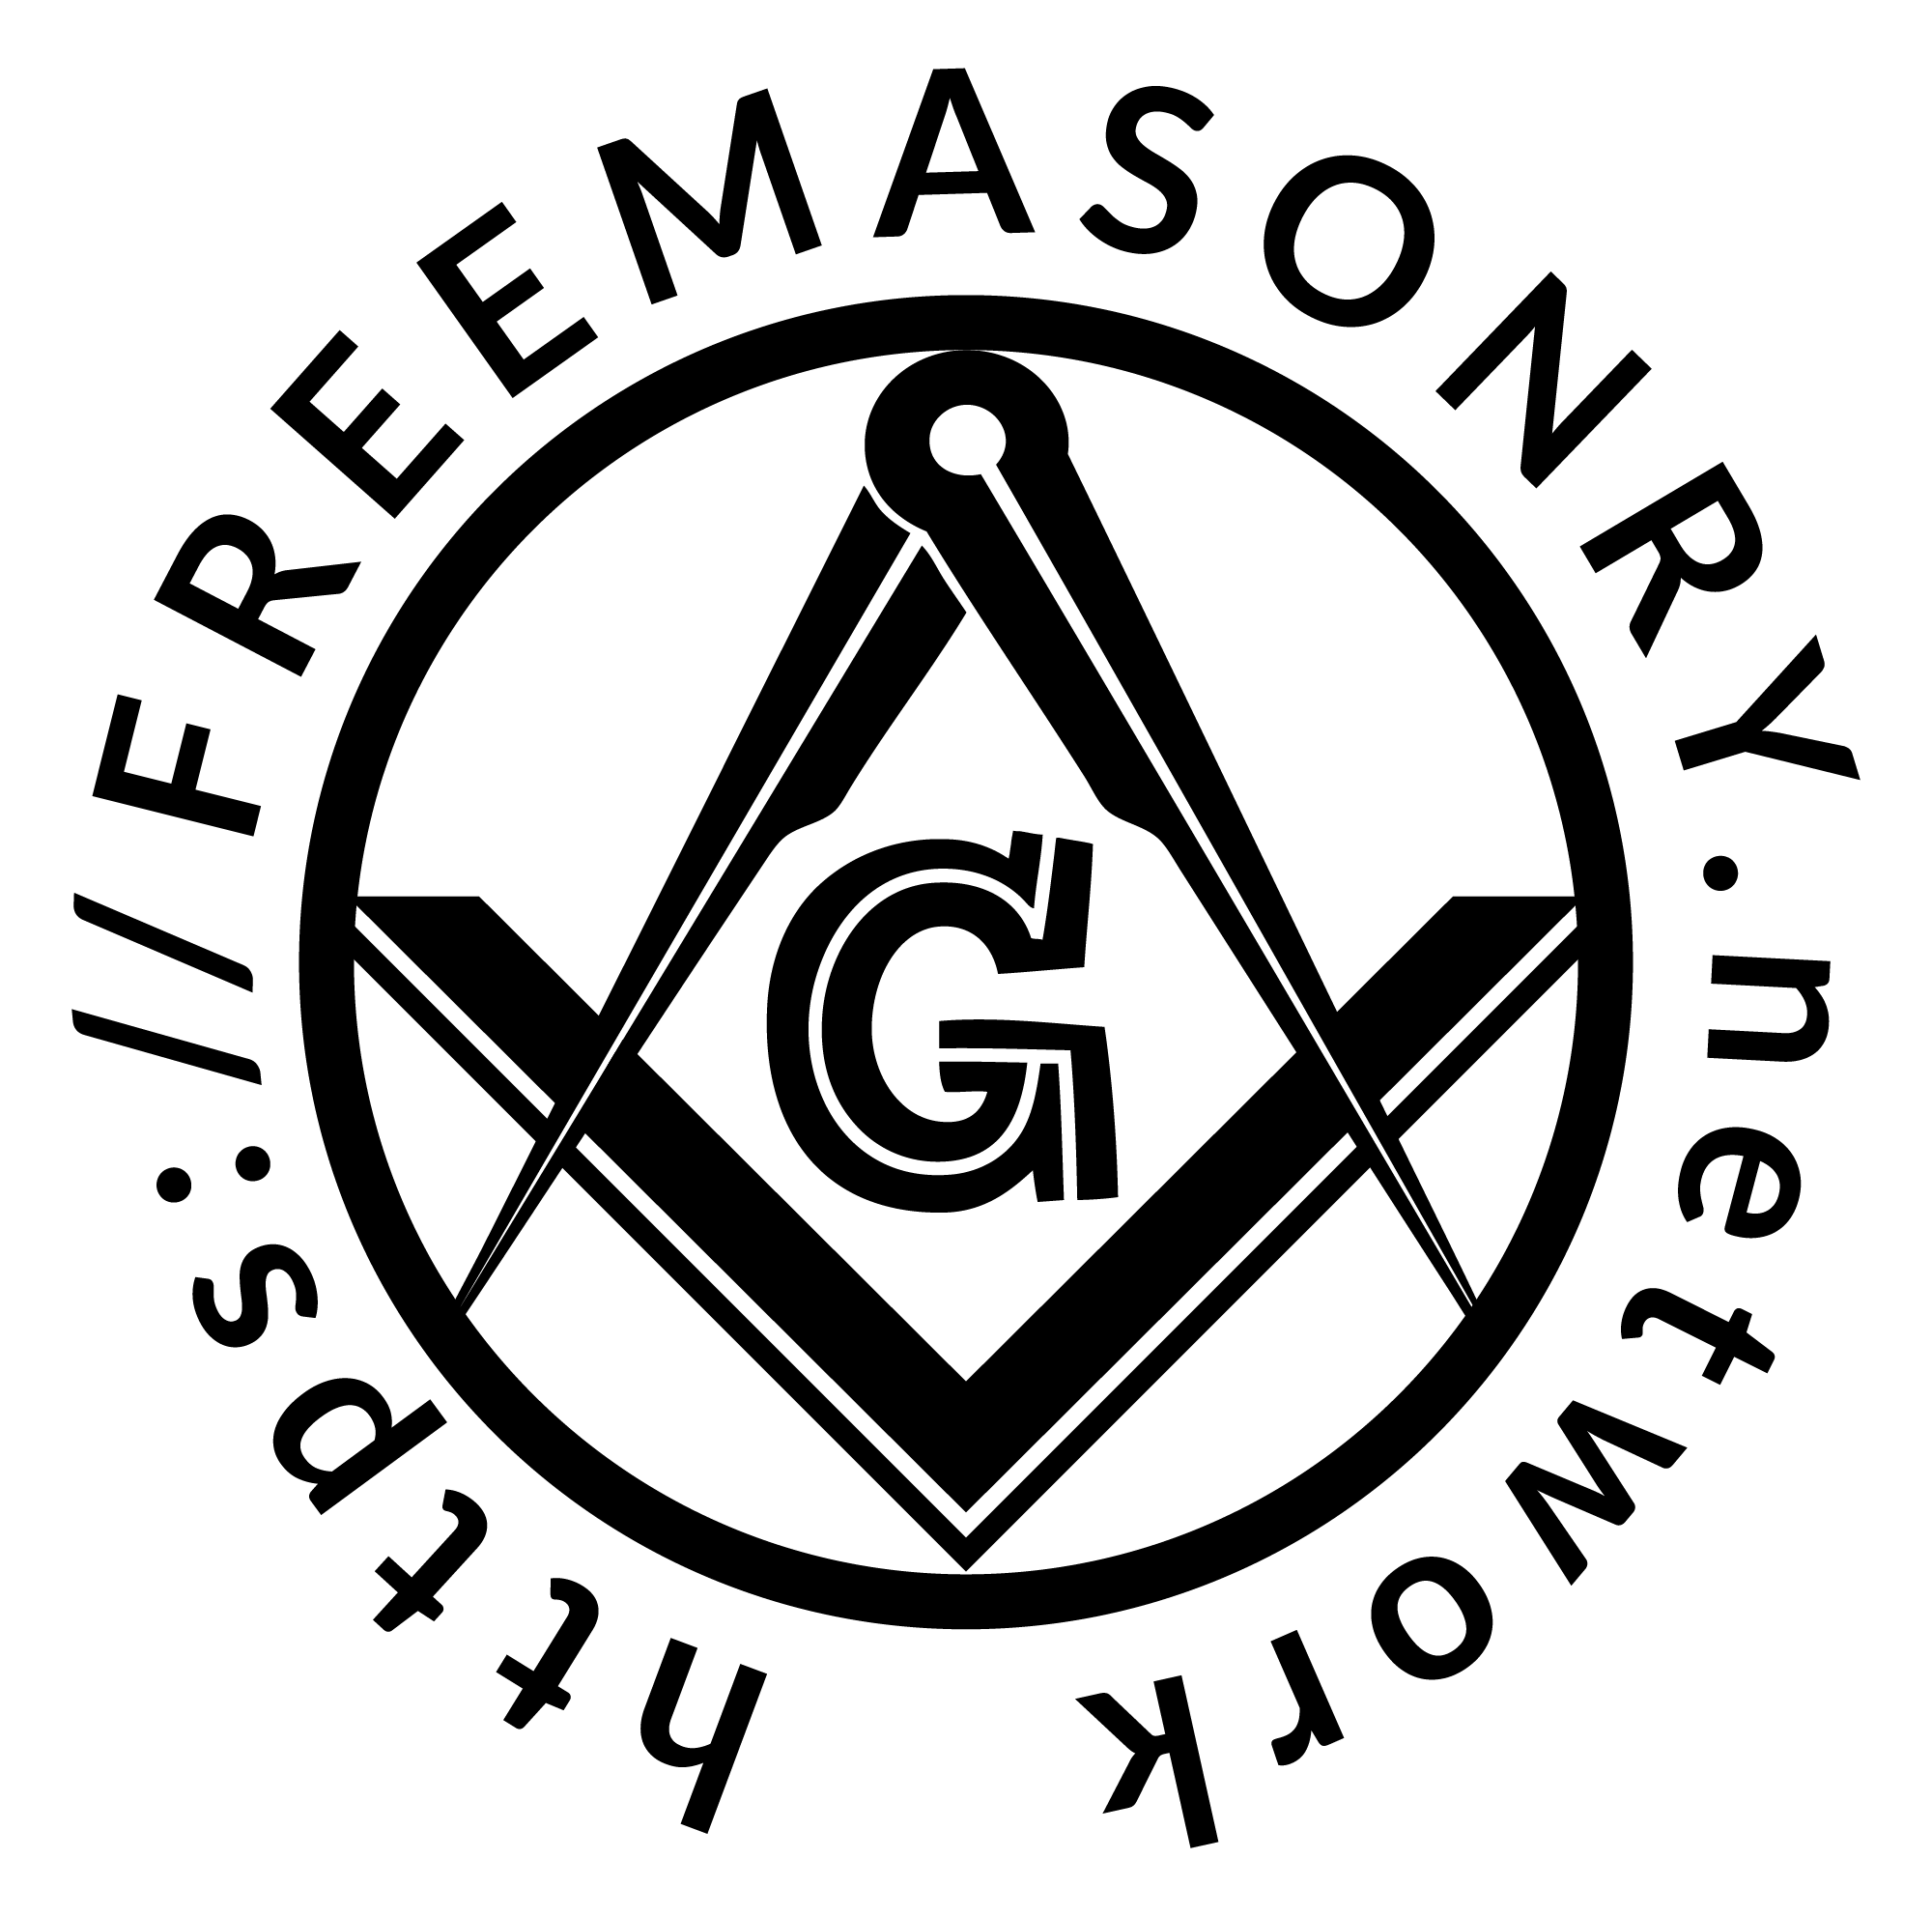 DEVELOPMENT AND HISTORY OF MASONIC TEMPLES